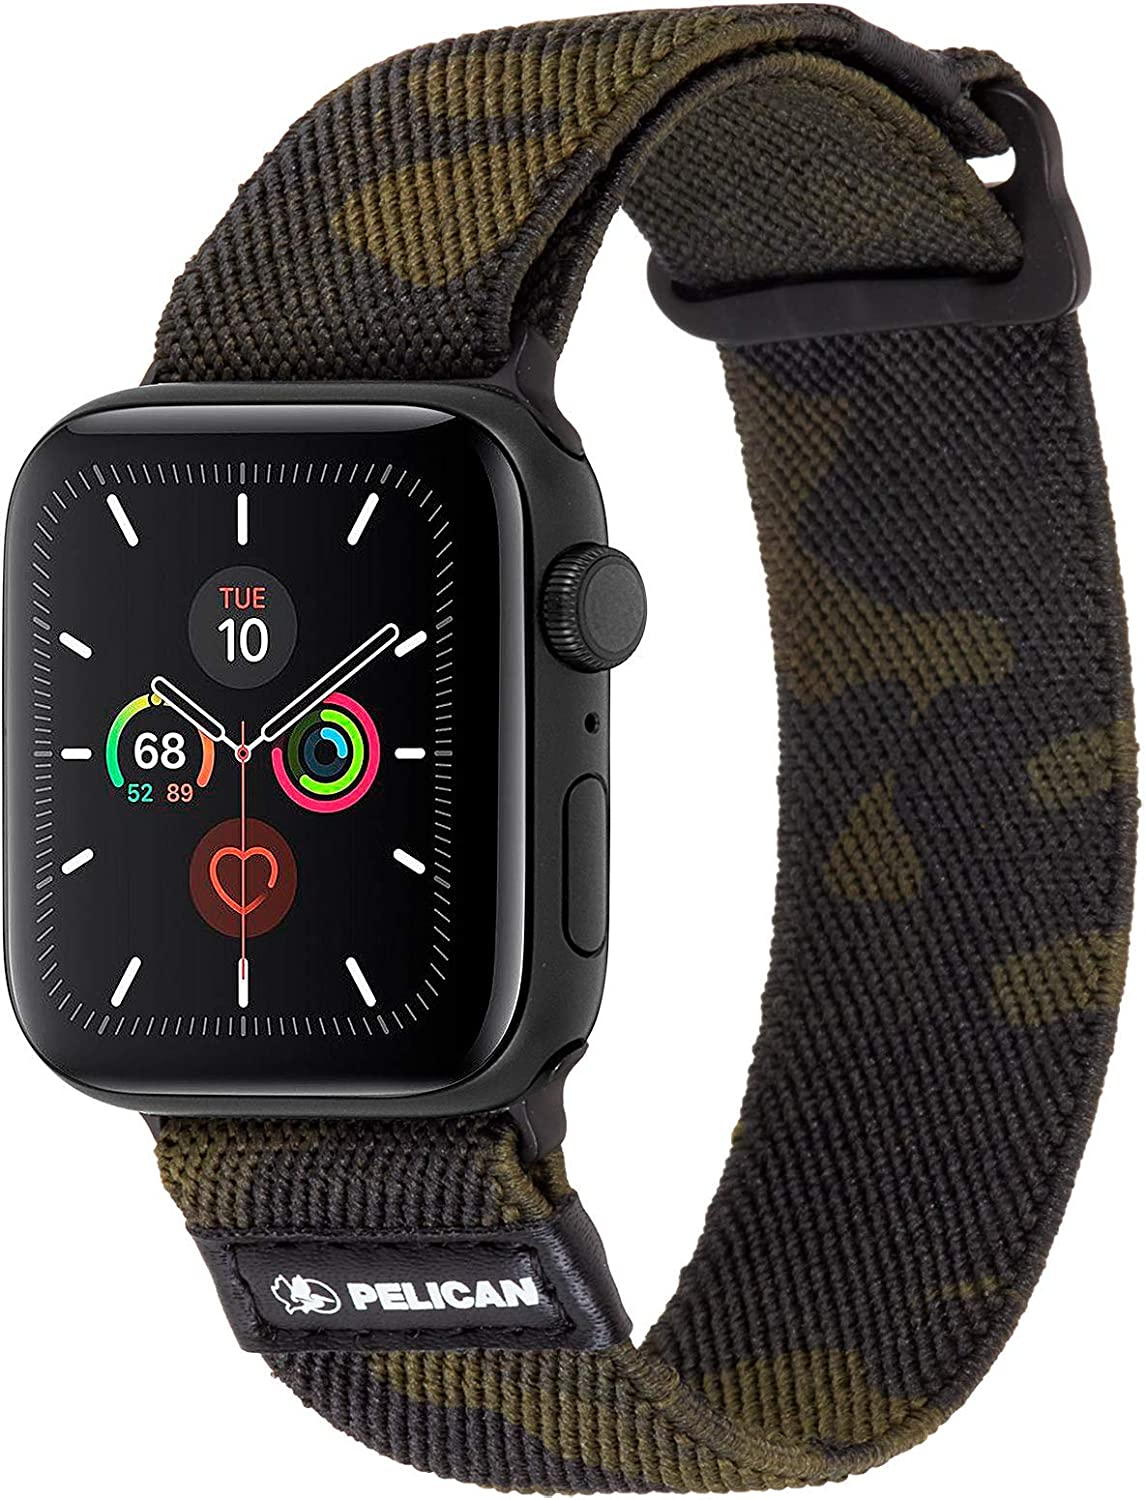 Pelican - Protector Series - Watch Band for Apple Watch Series 1/2/3/4/5-38-40mm - Camo Green